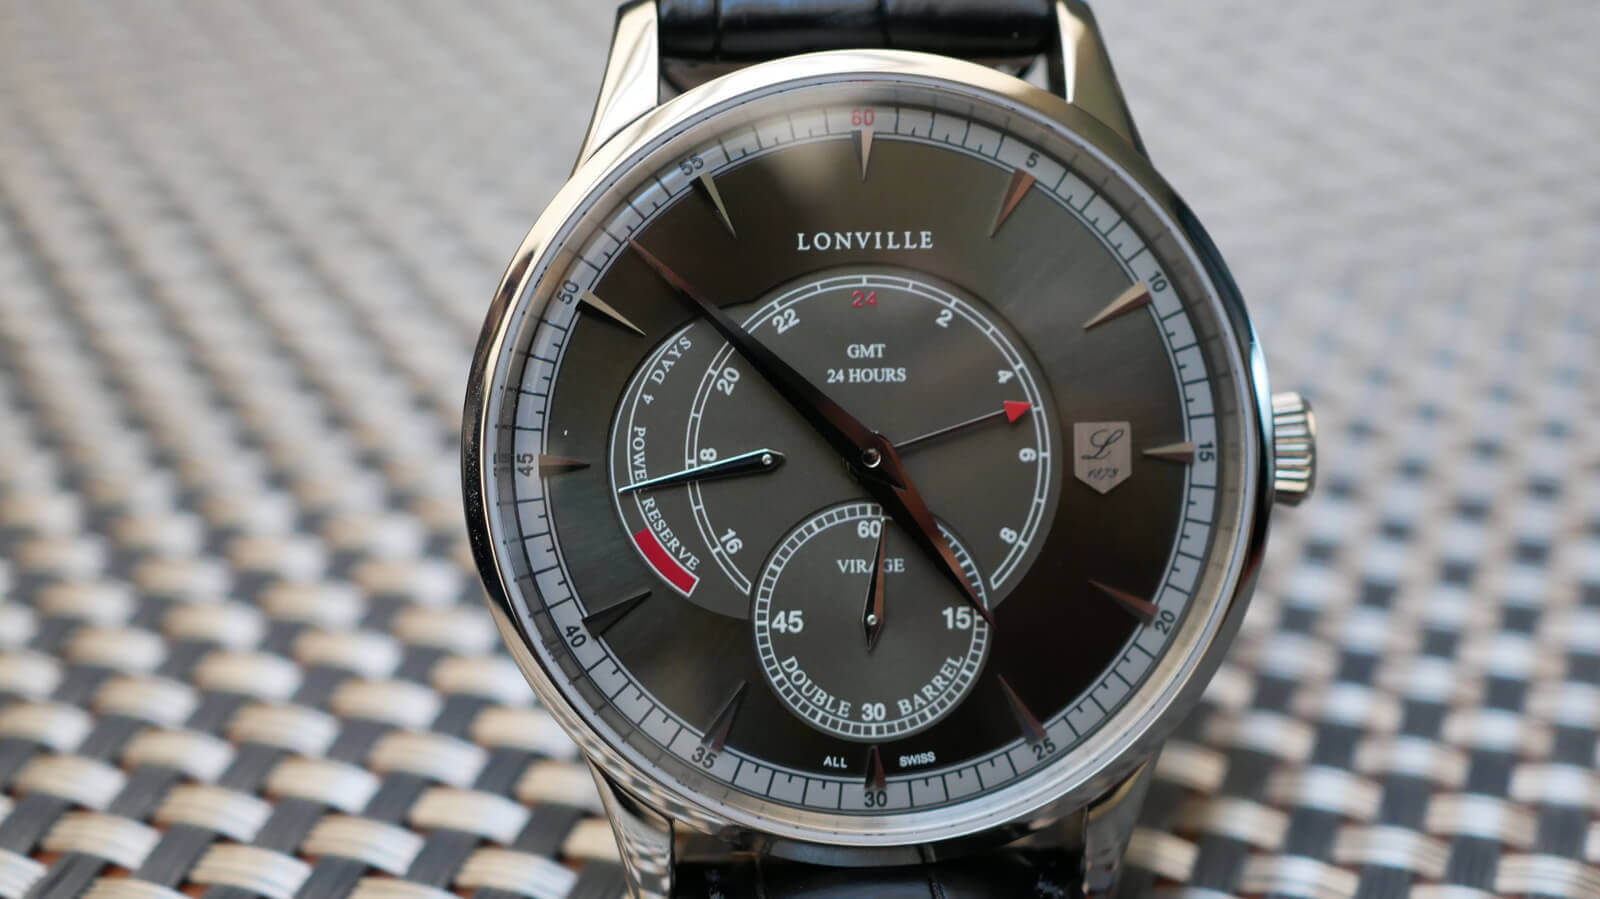 Lonville Gunmetal GMT - gold watch with small seconds, GMT display and power reserve indicator